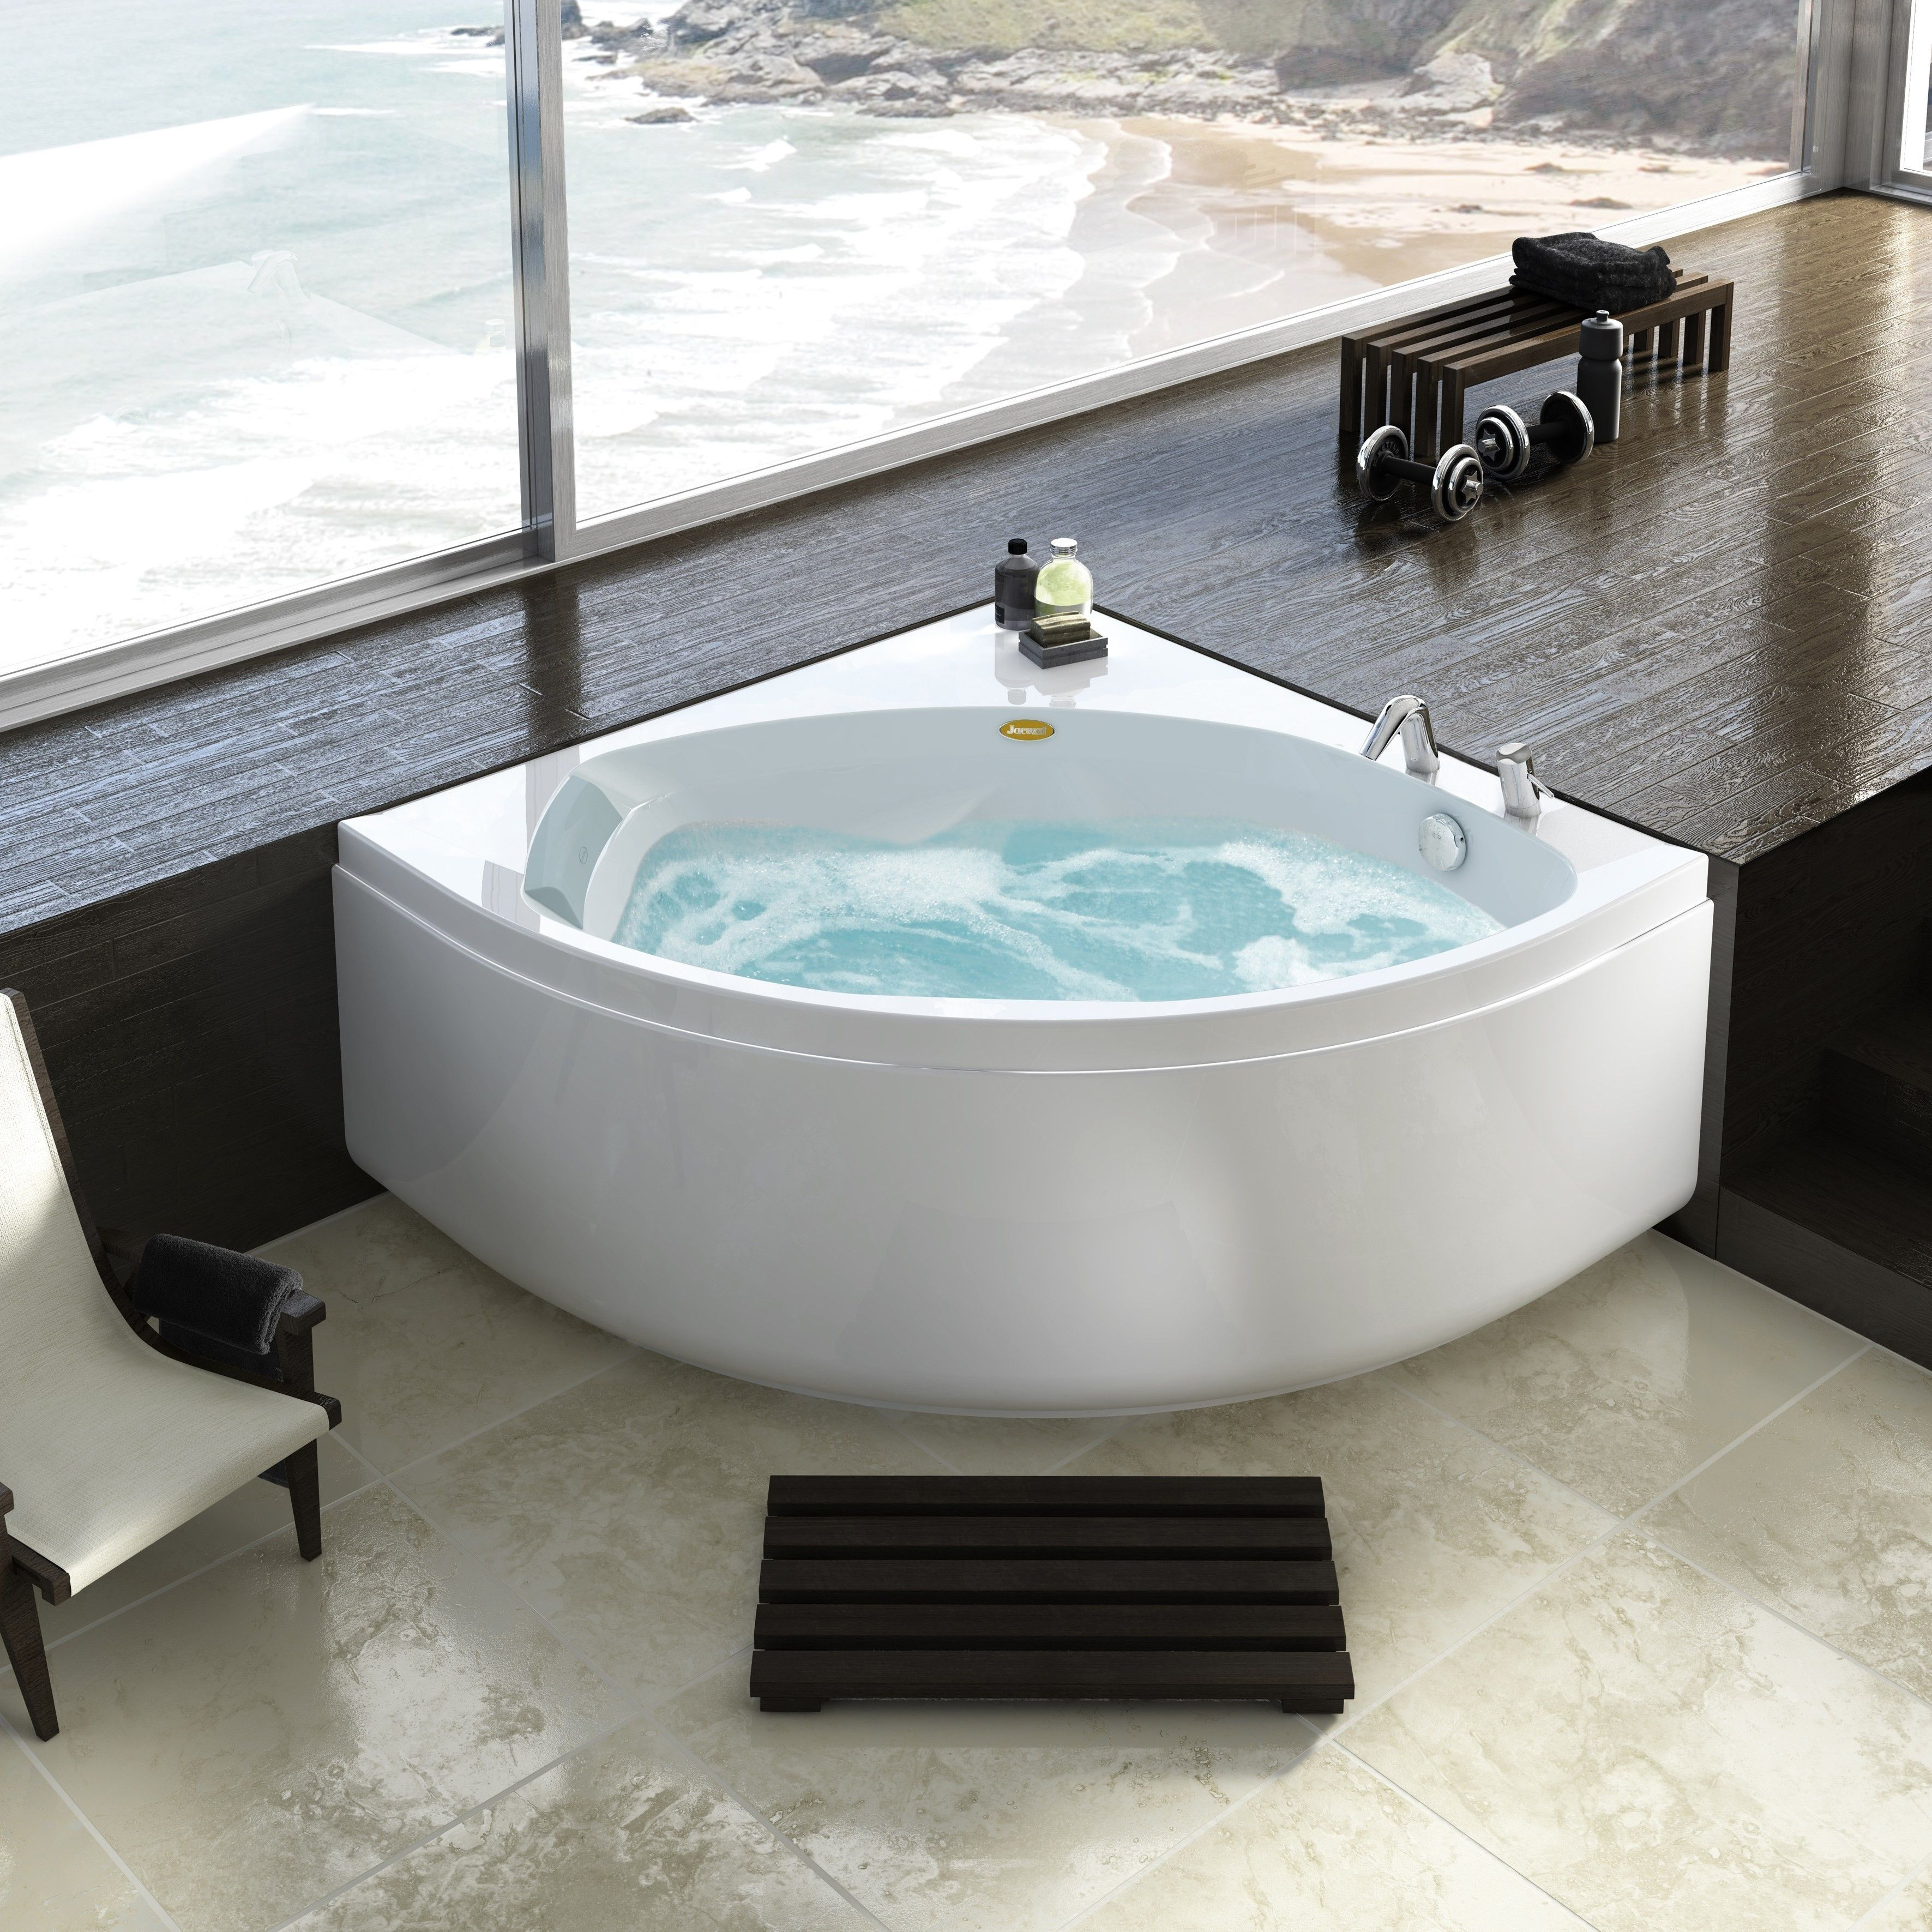 Pieces Detachees Baignoire Balneo Pieces Detachees Baignoire Balneo Pieces Detachees Francepool Balneo Pro Francepool Balneo Pro Corner Bathtub Bathtub Tub